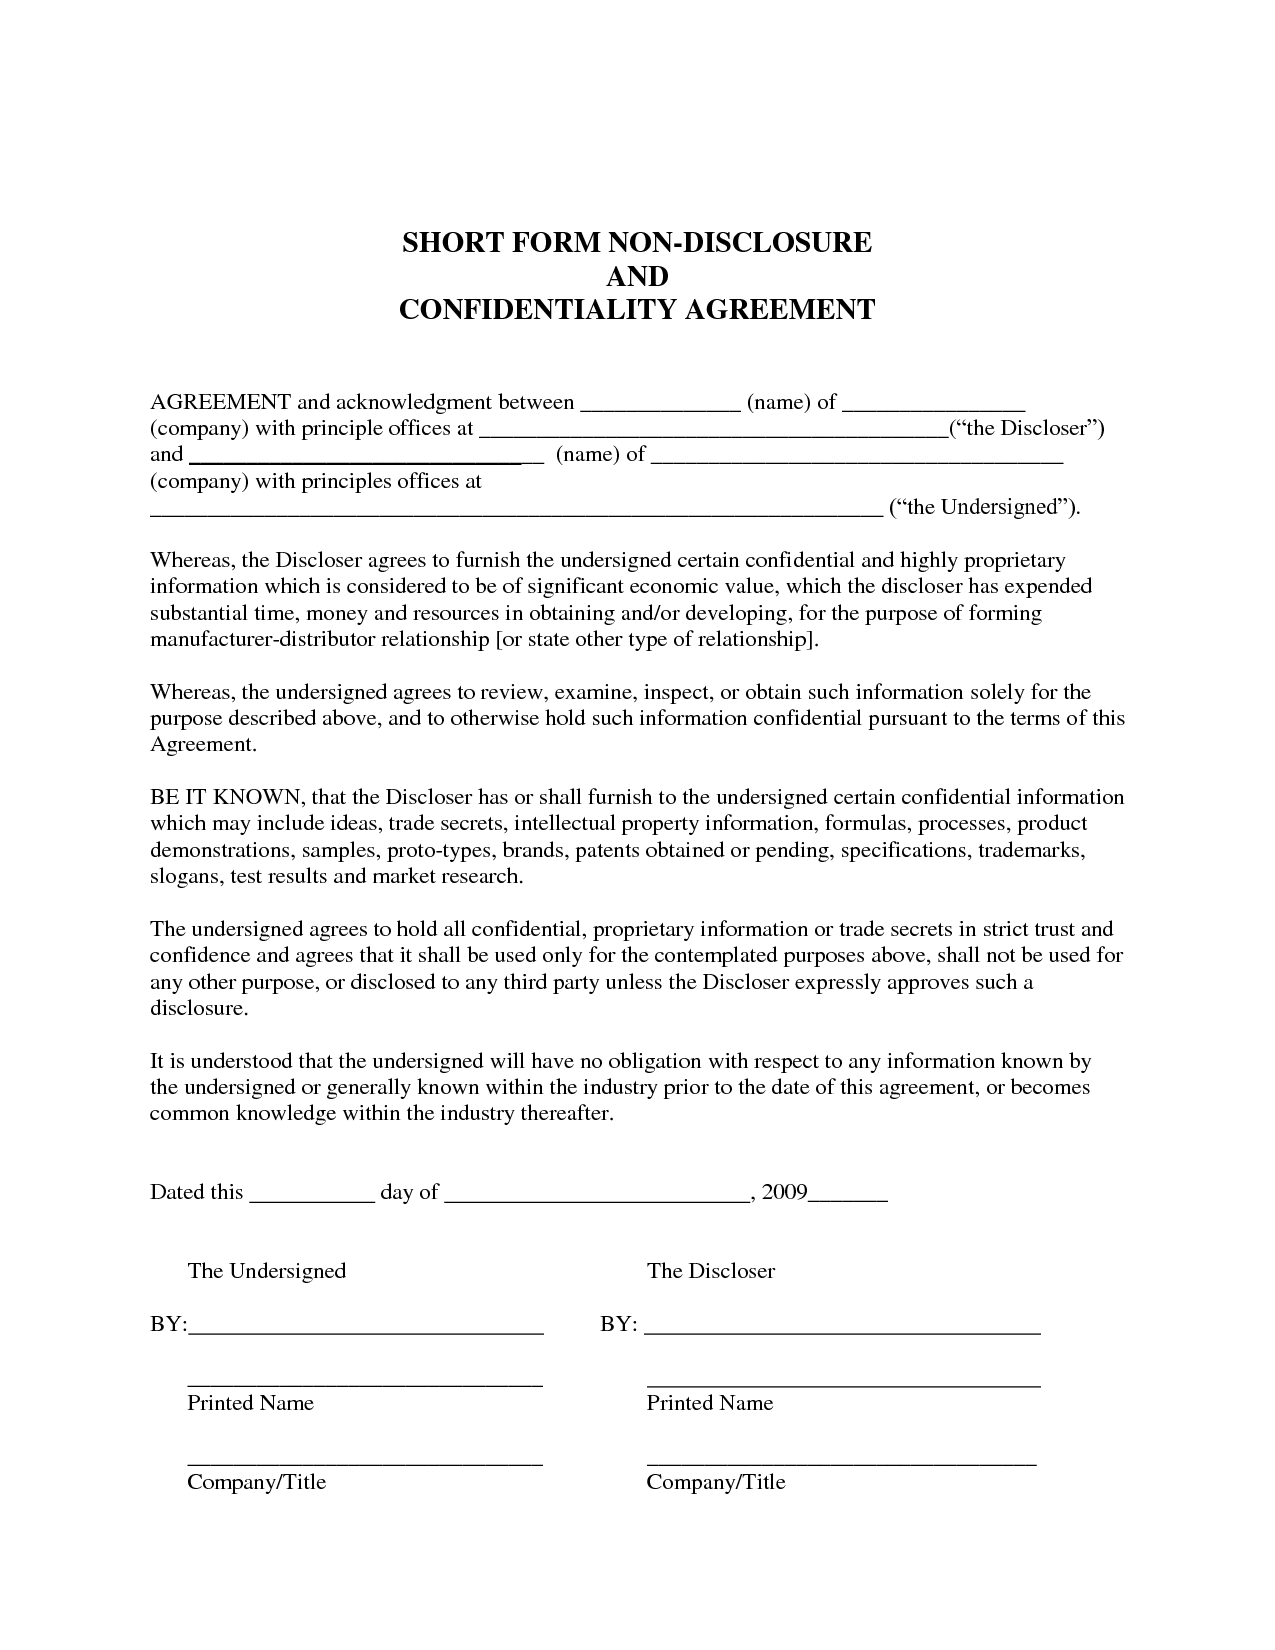 Sample NonDisclosure Agreement – Non Disclosure Agreement Word Document